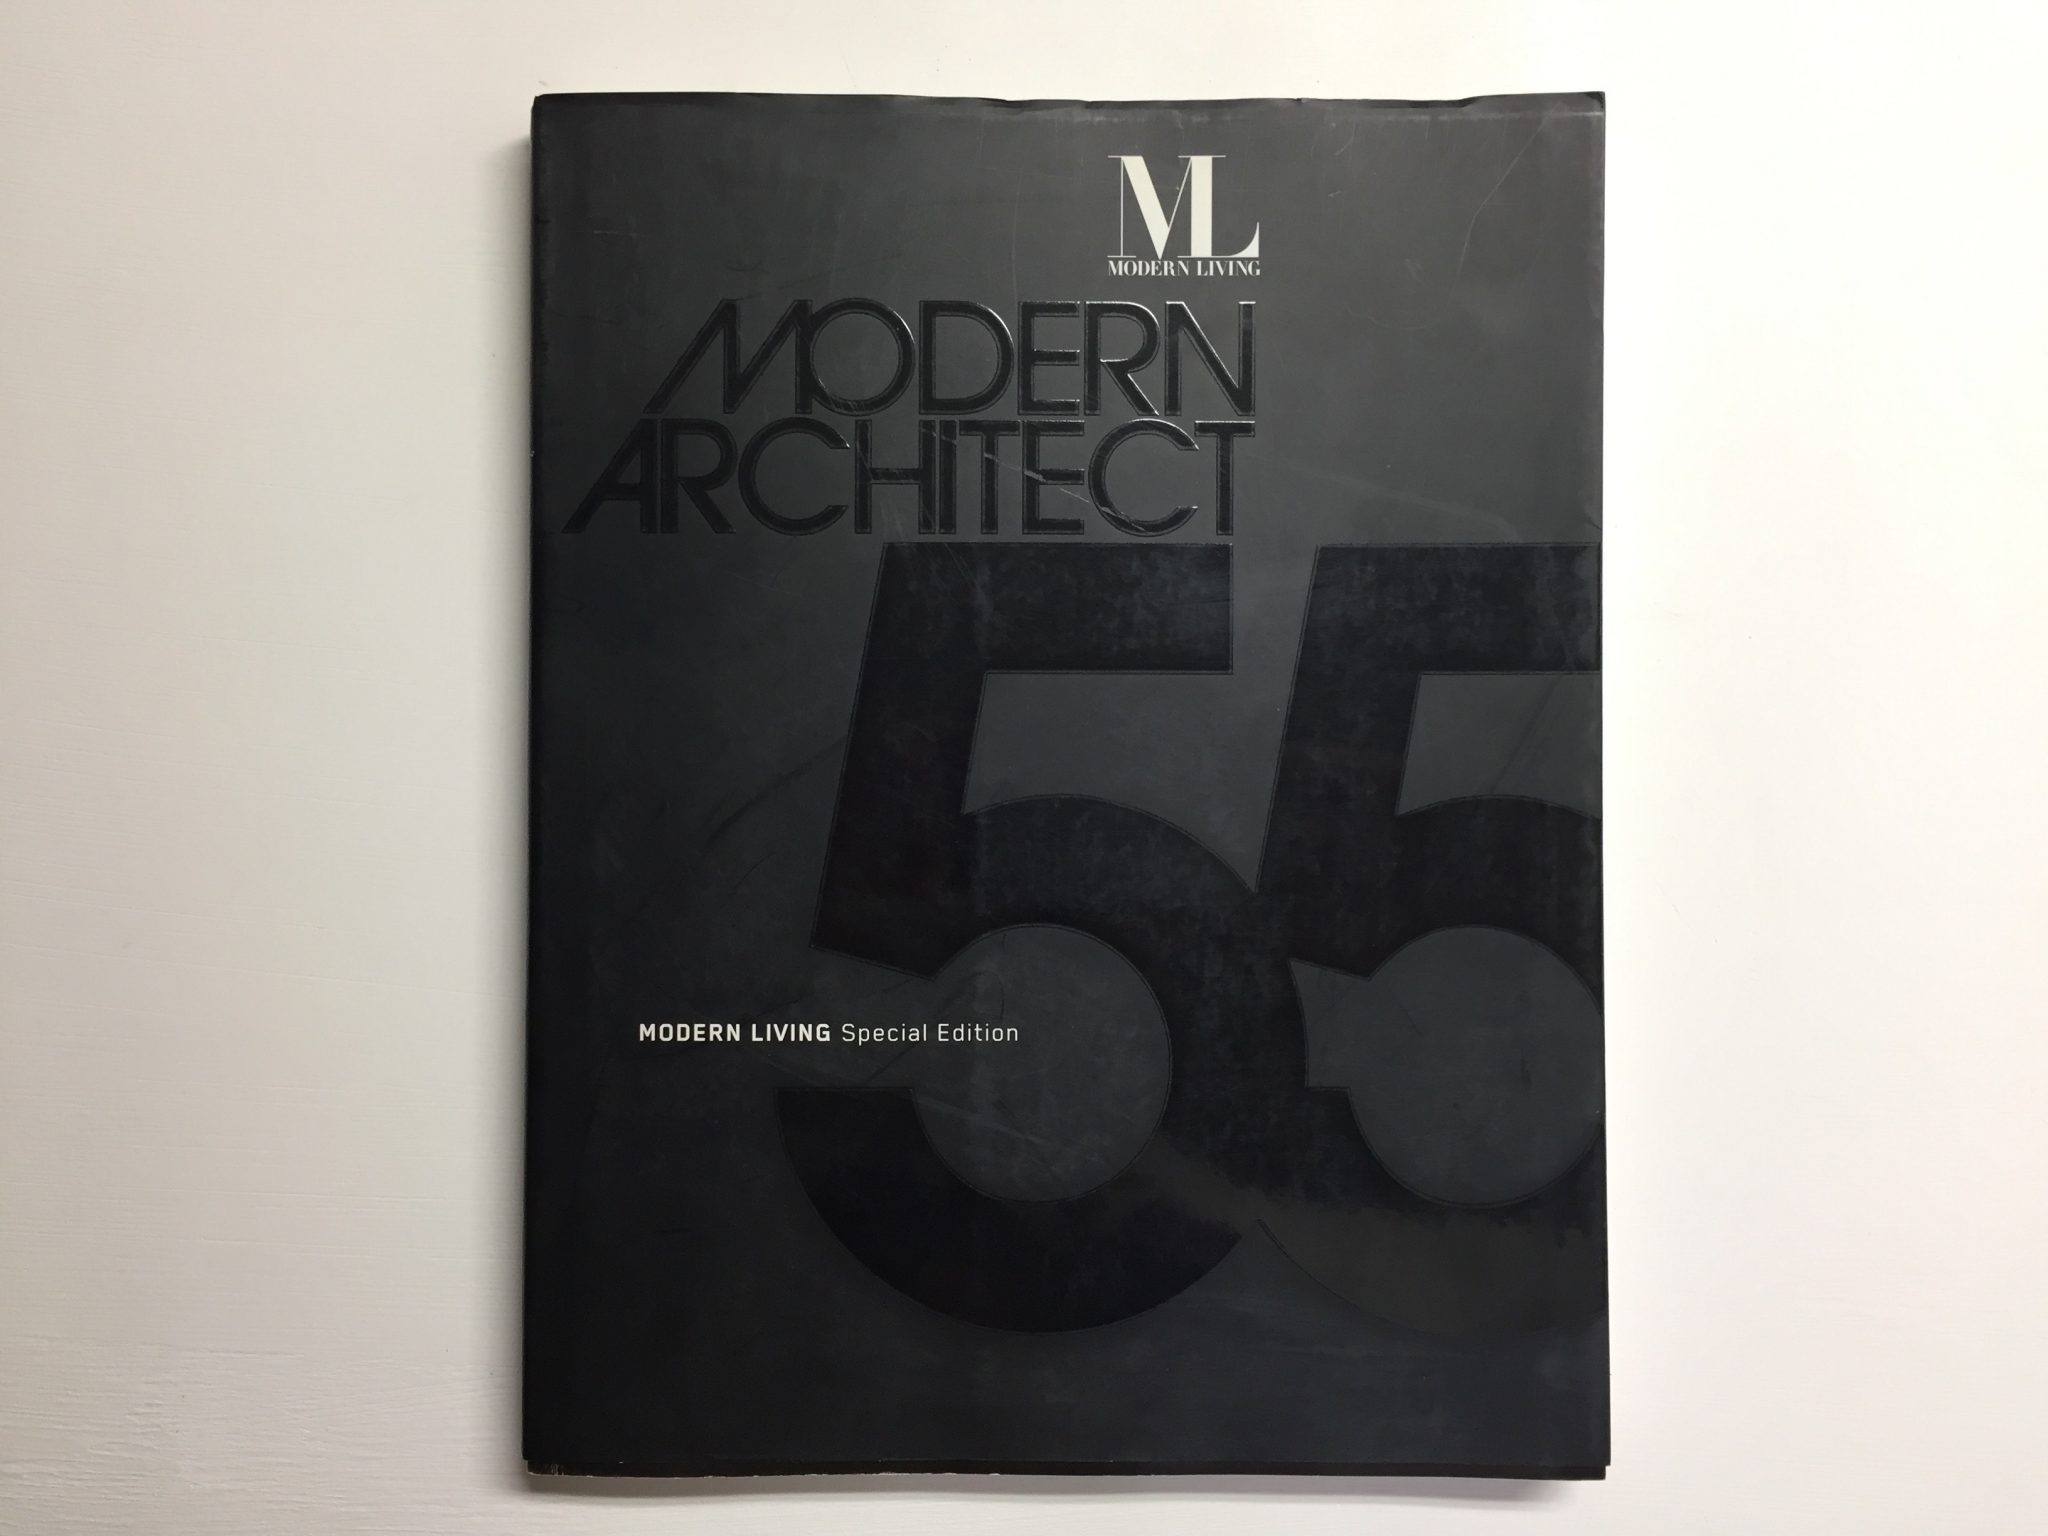 Modern Living Modern Architect 55